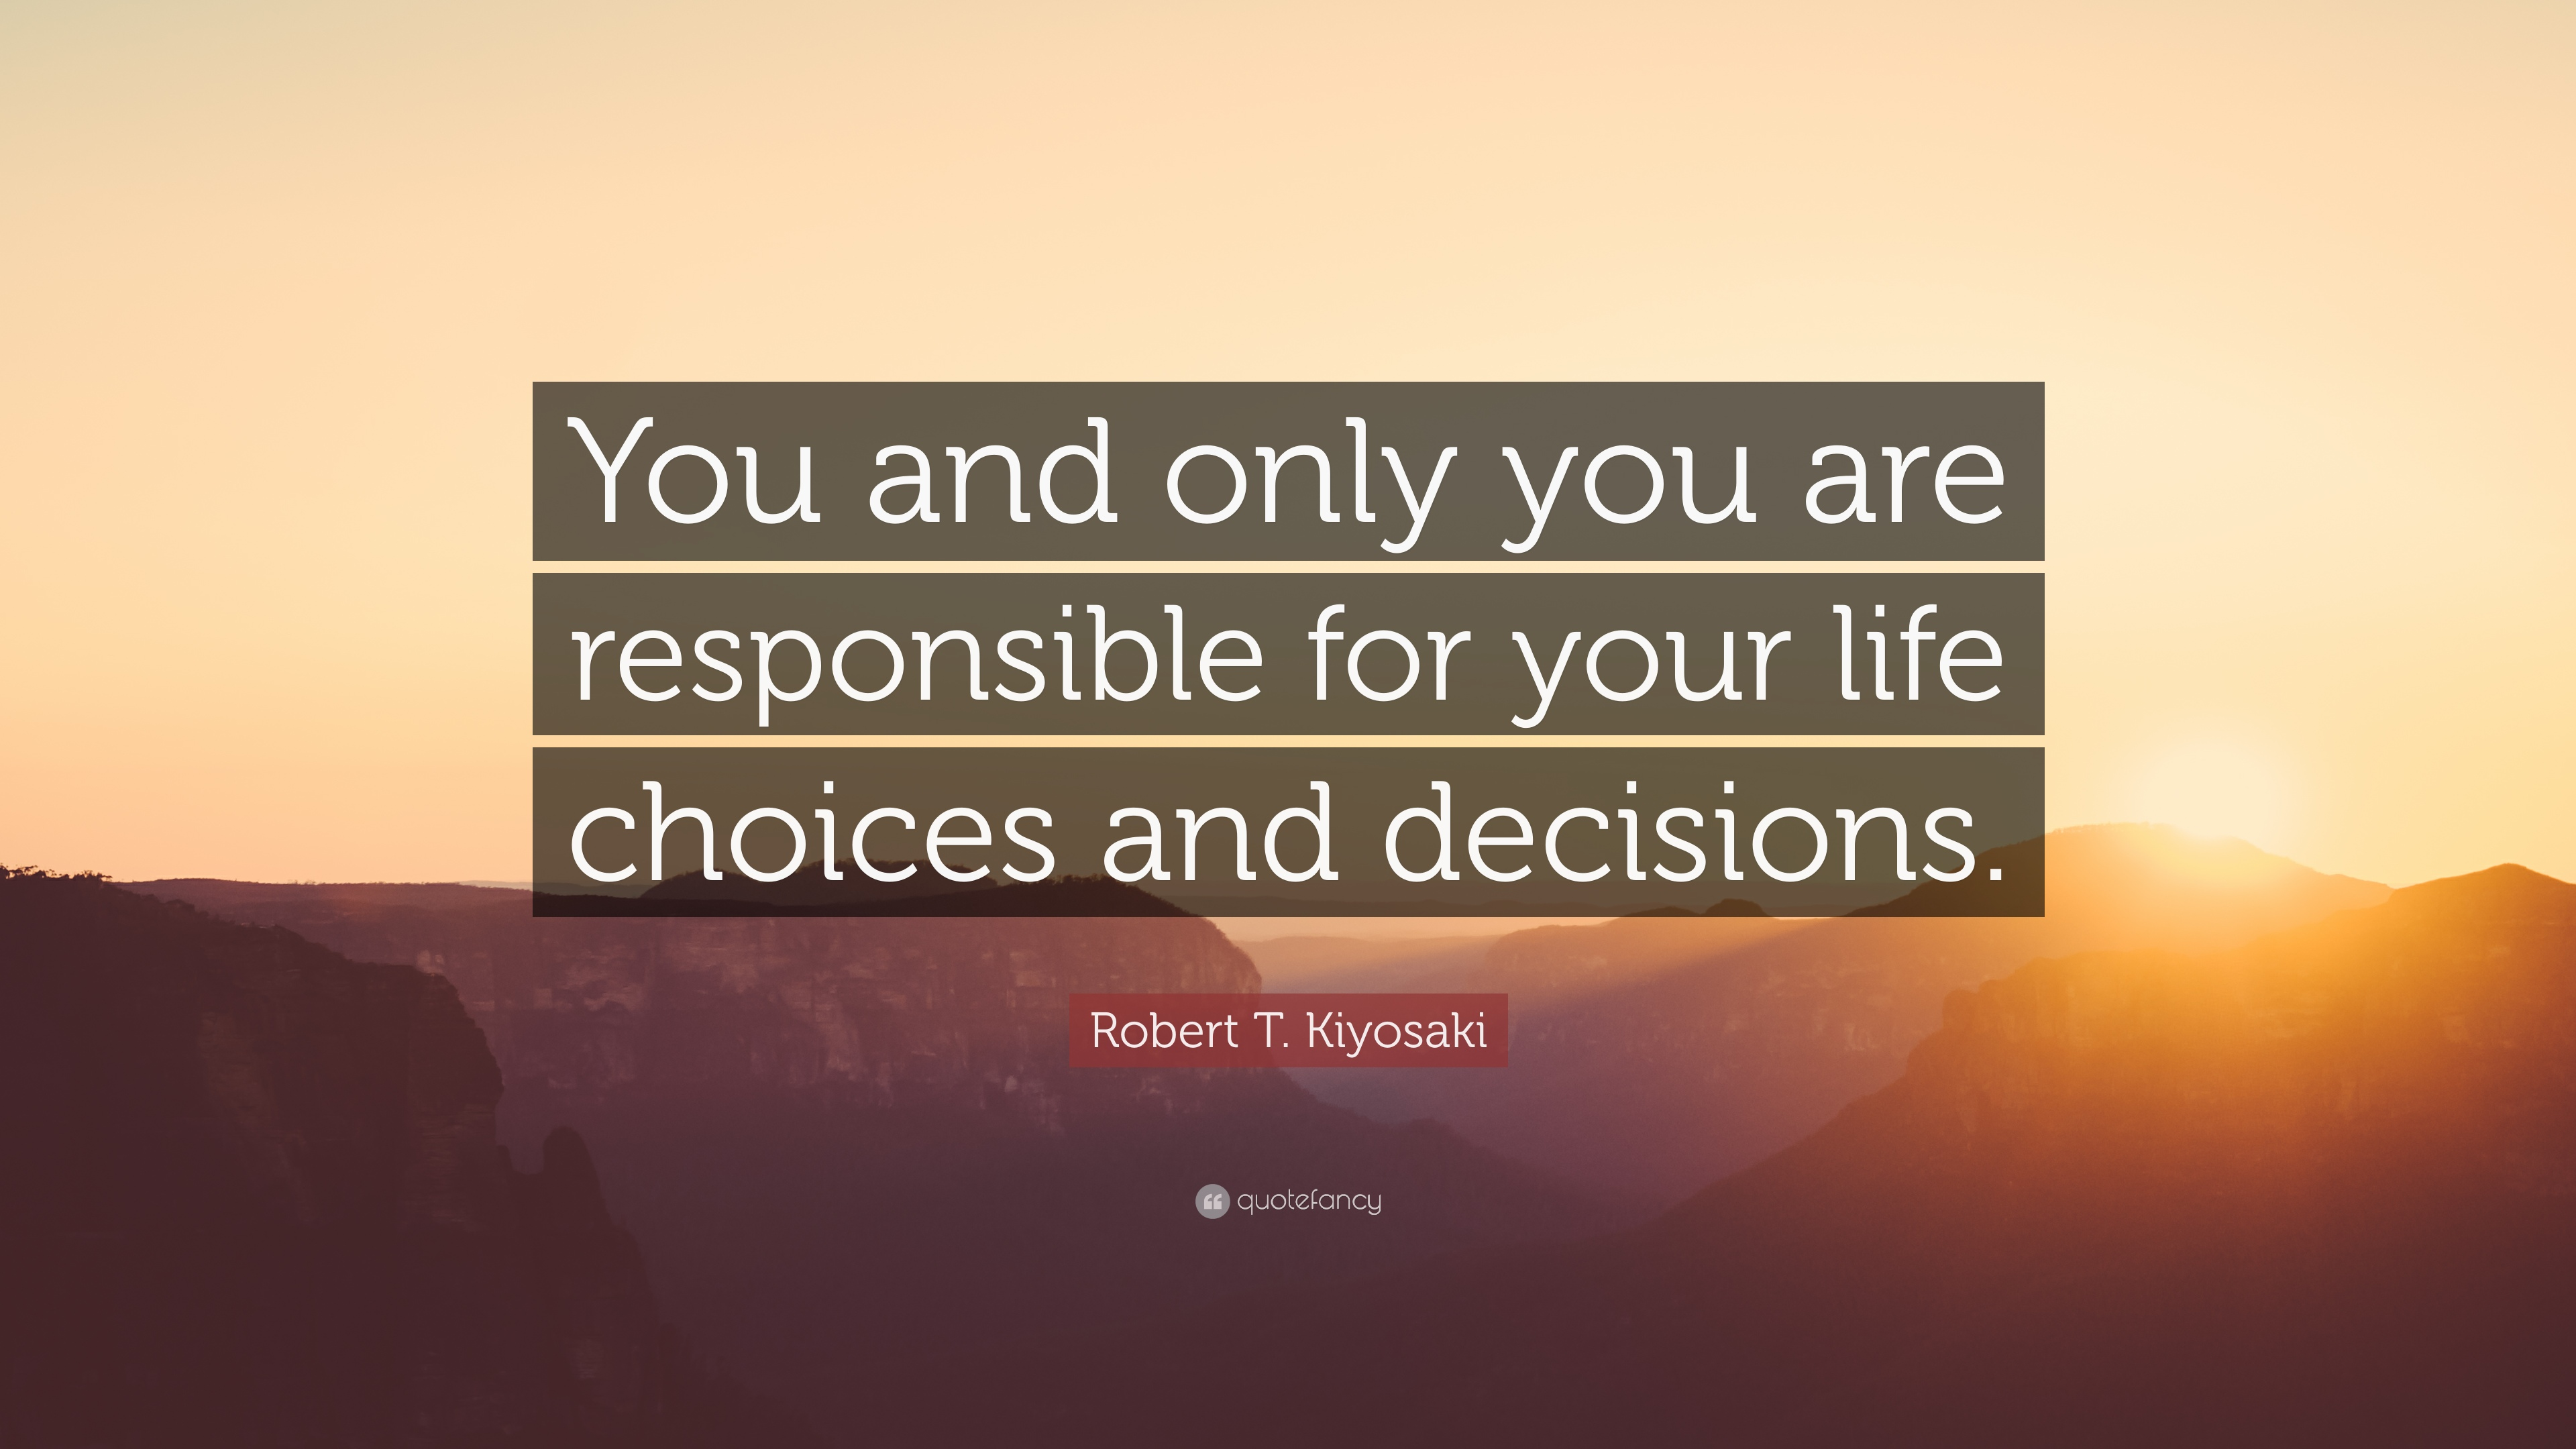 Life Decision Quotes Decision Quotes (40 wallpapers)   Quotefancy Life Decision Quotes